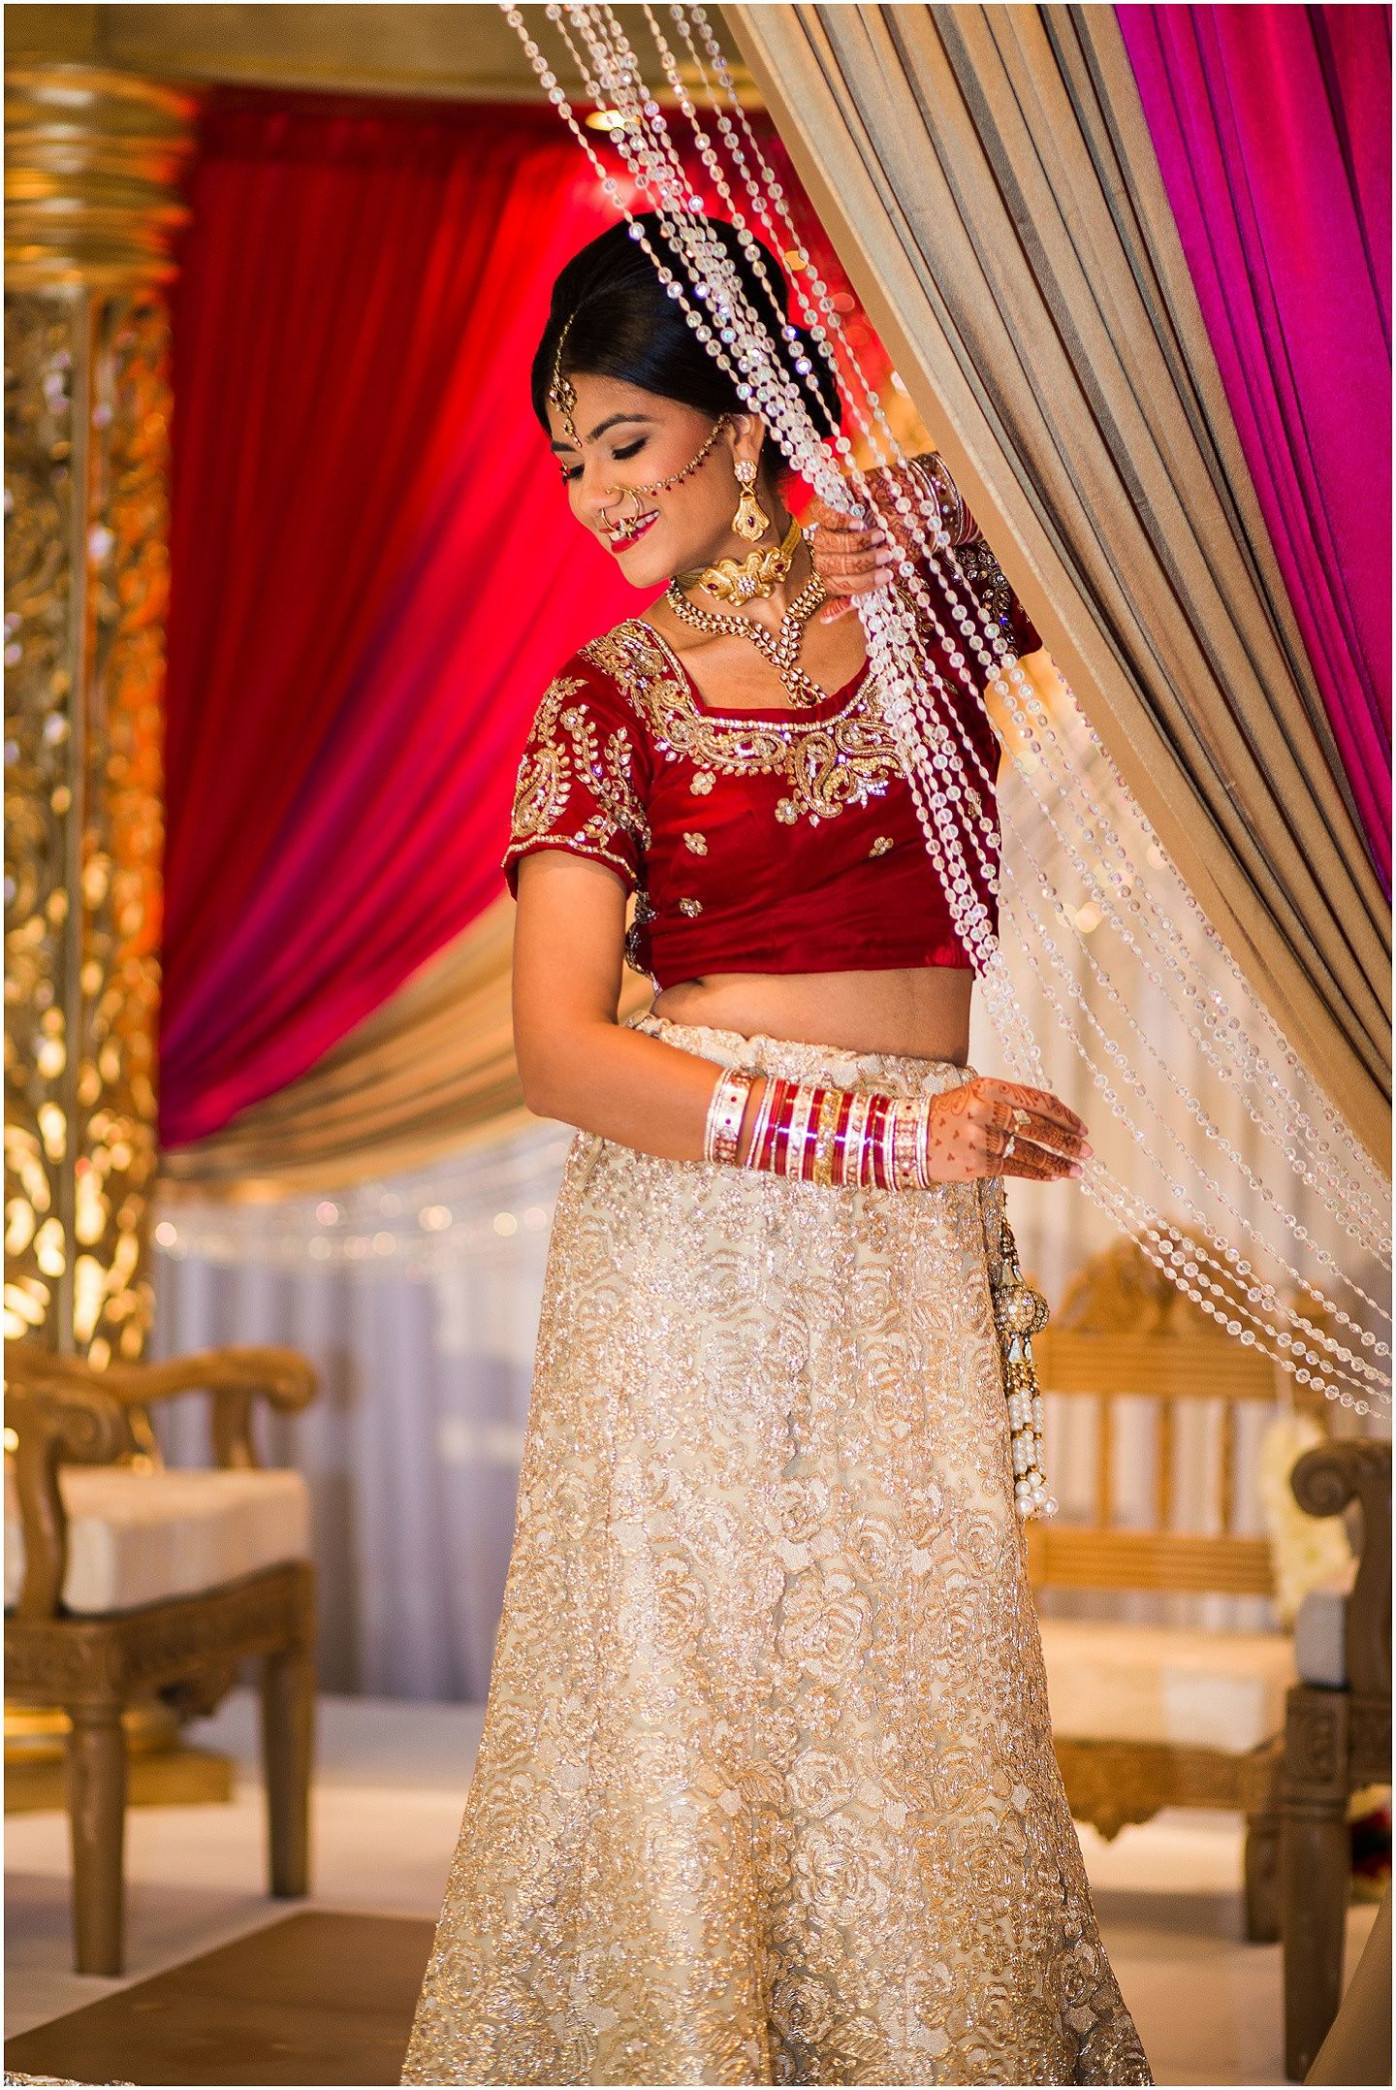 Indian Bridal poses - Indian Wedding Photographer | Indian ...